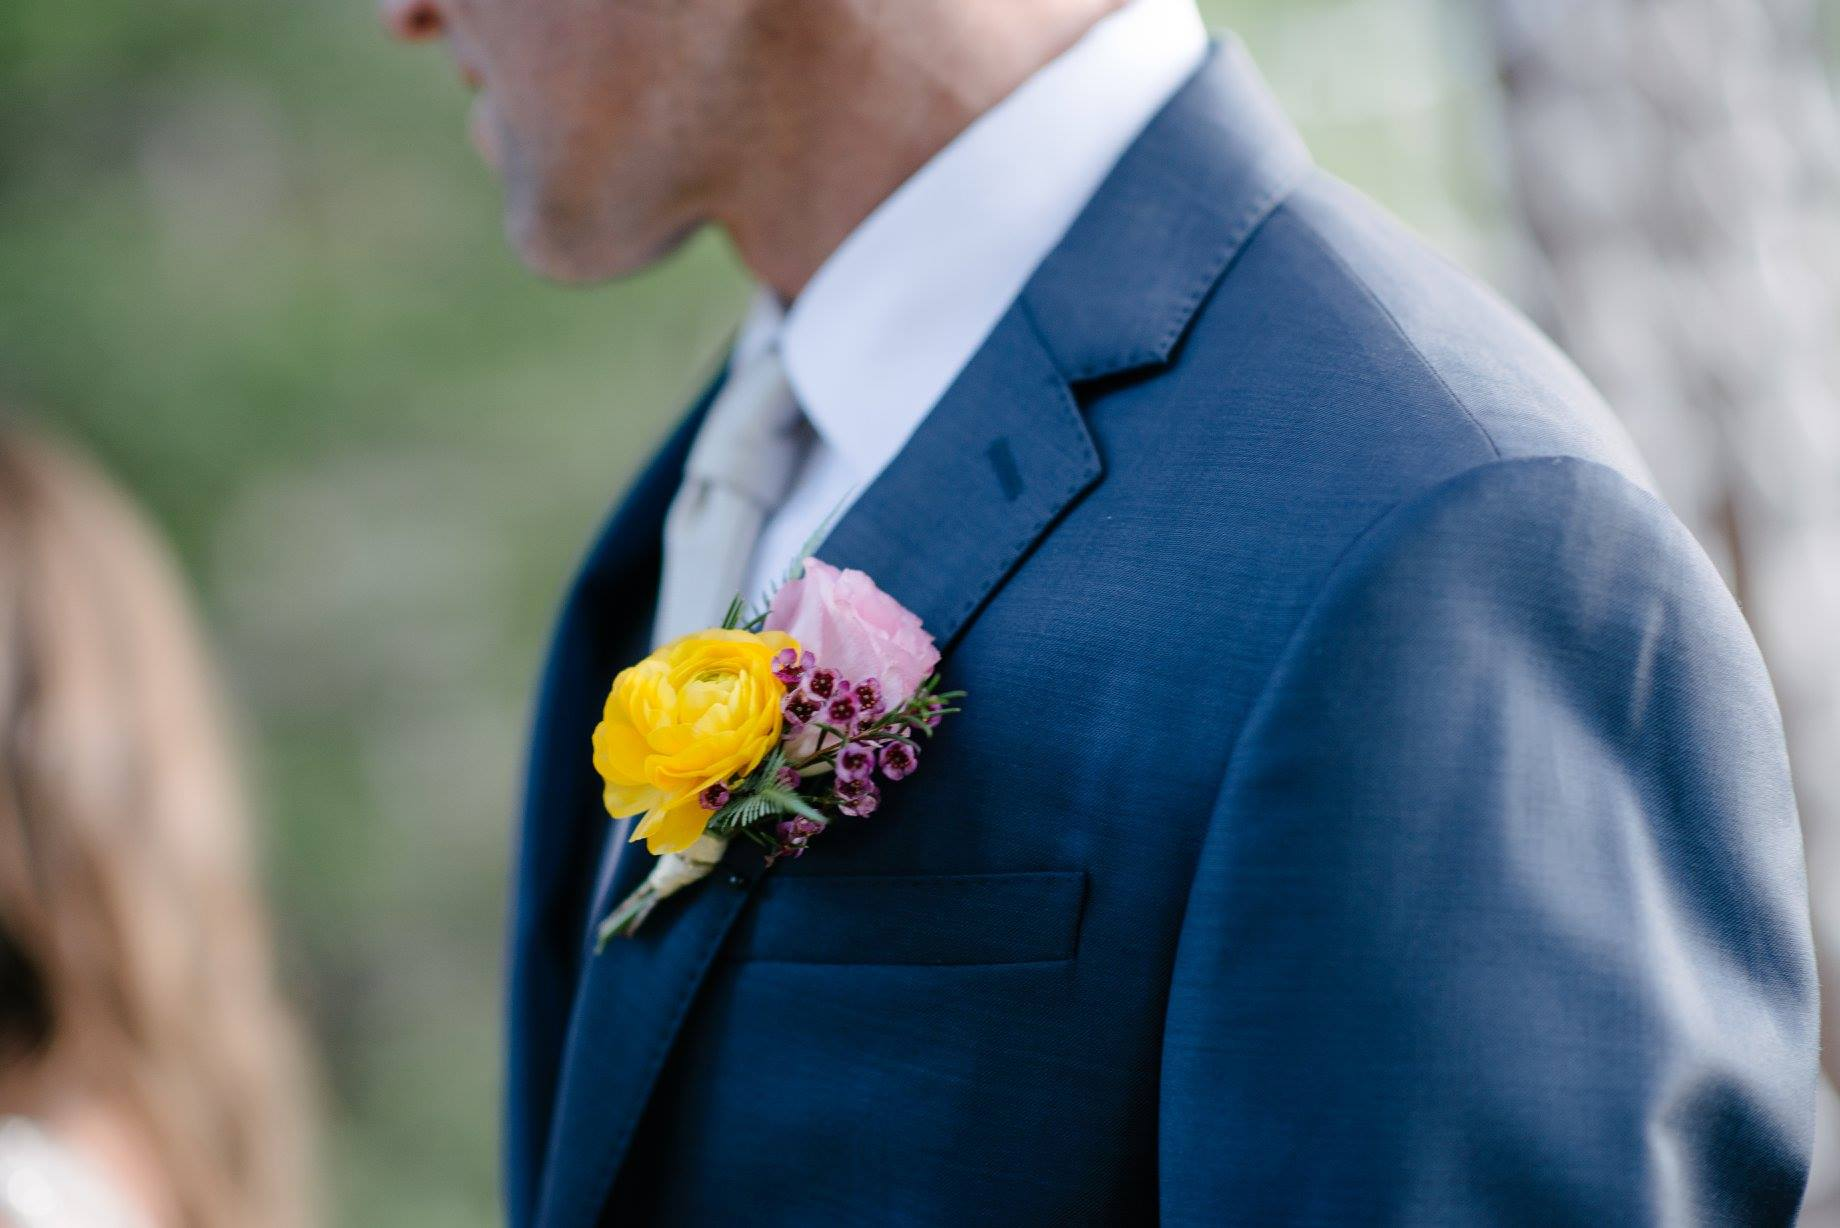 Flowers by Lace and Lilies, Blue suit groom, yellow, pink and purple boutonniere - ranunculus and wax flower.